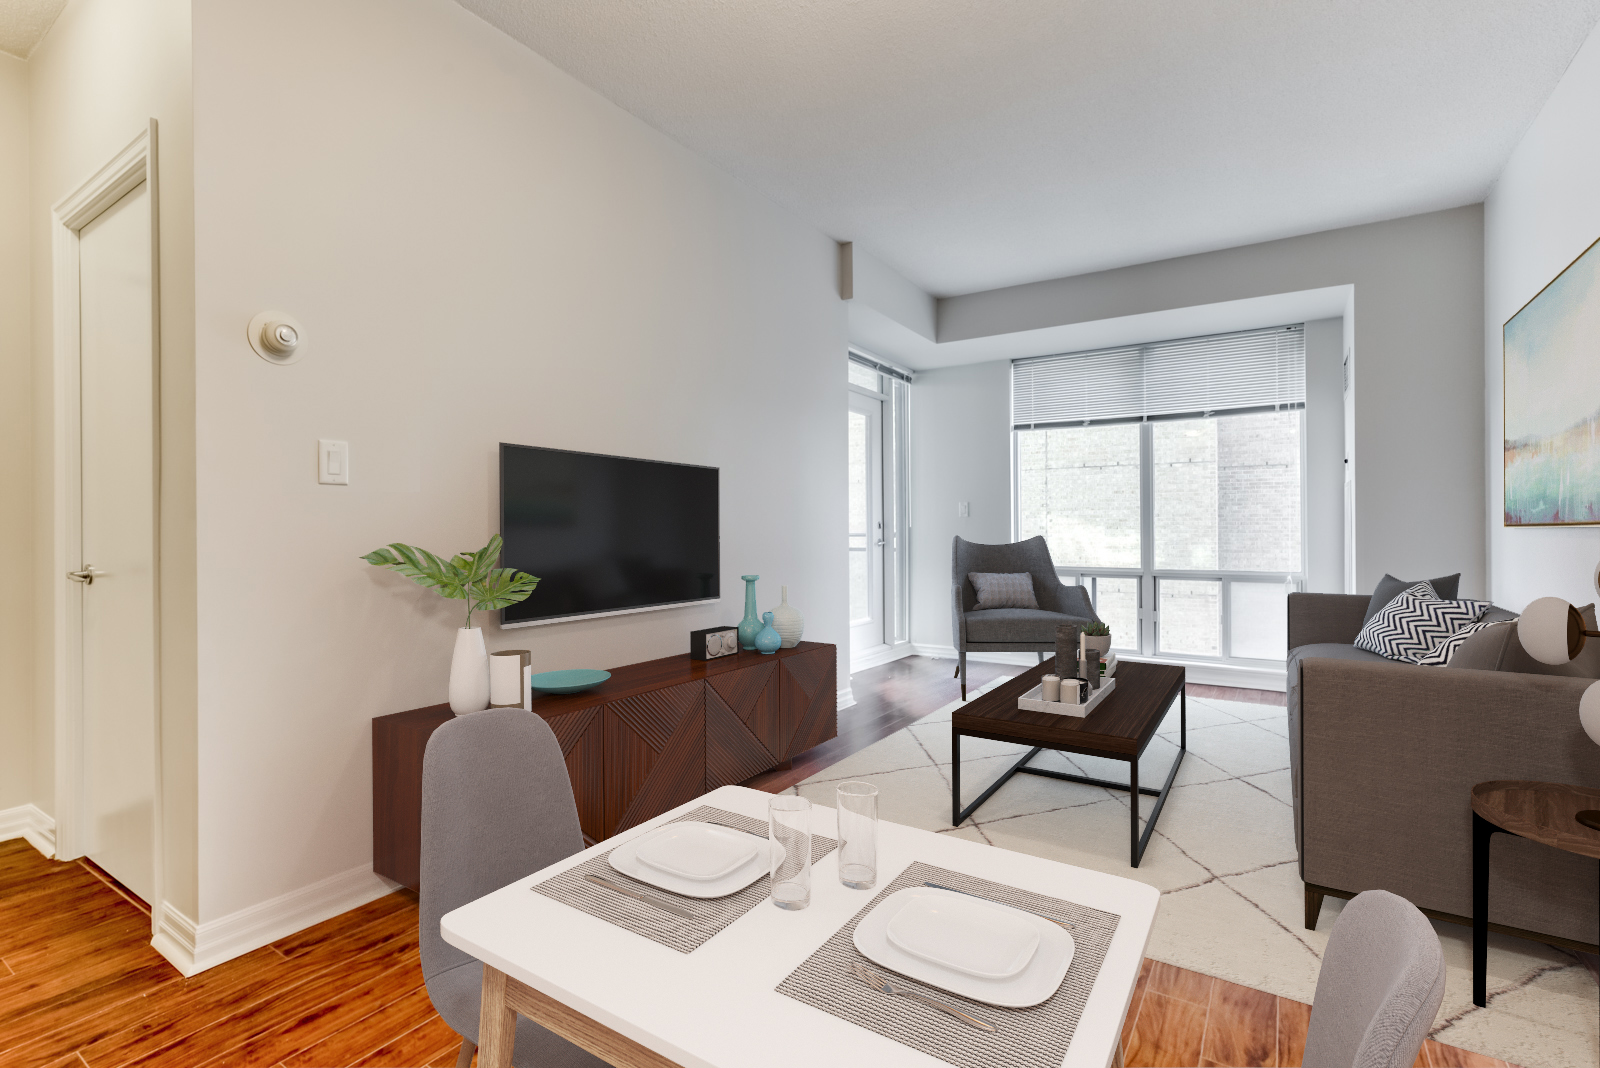 Real photo of condo dining room and living room with 3D rendered furniture, TV, carpet and painting.